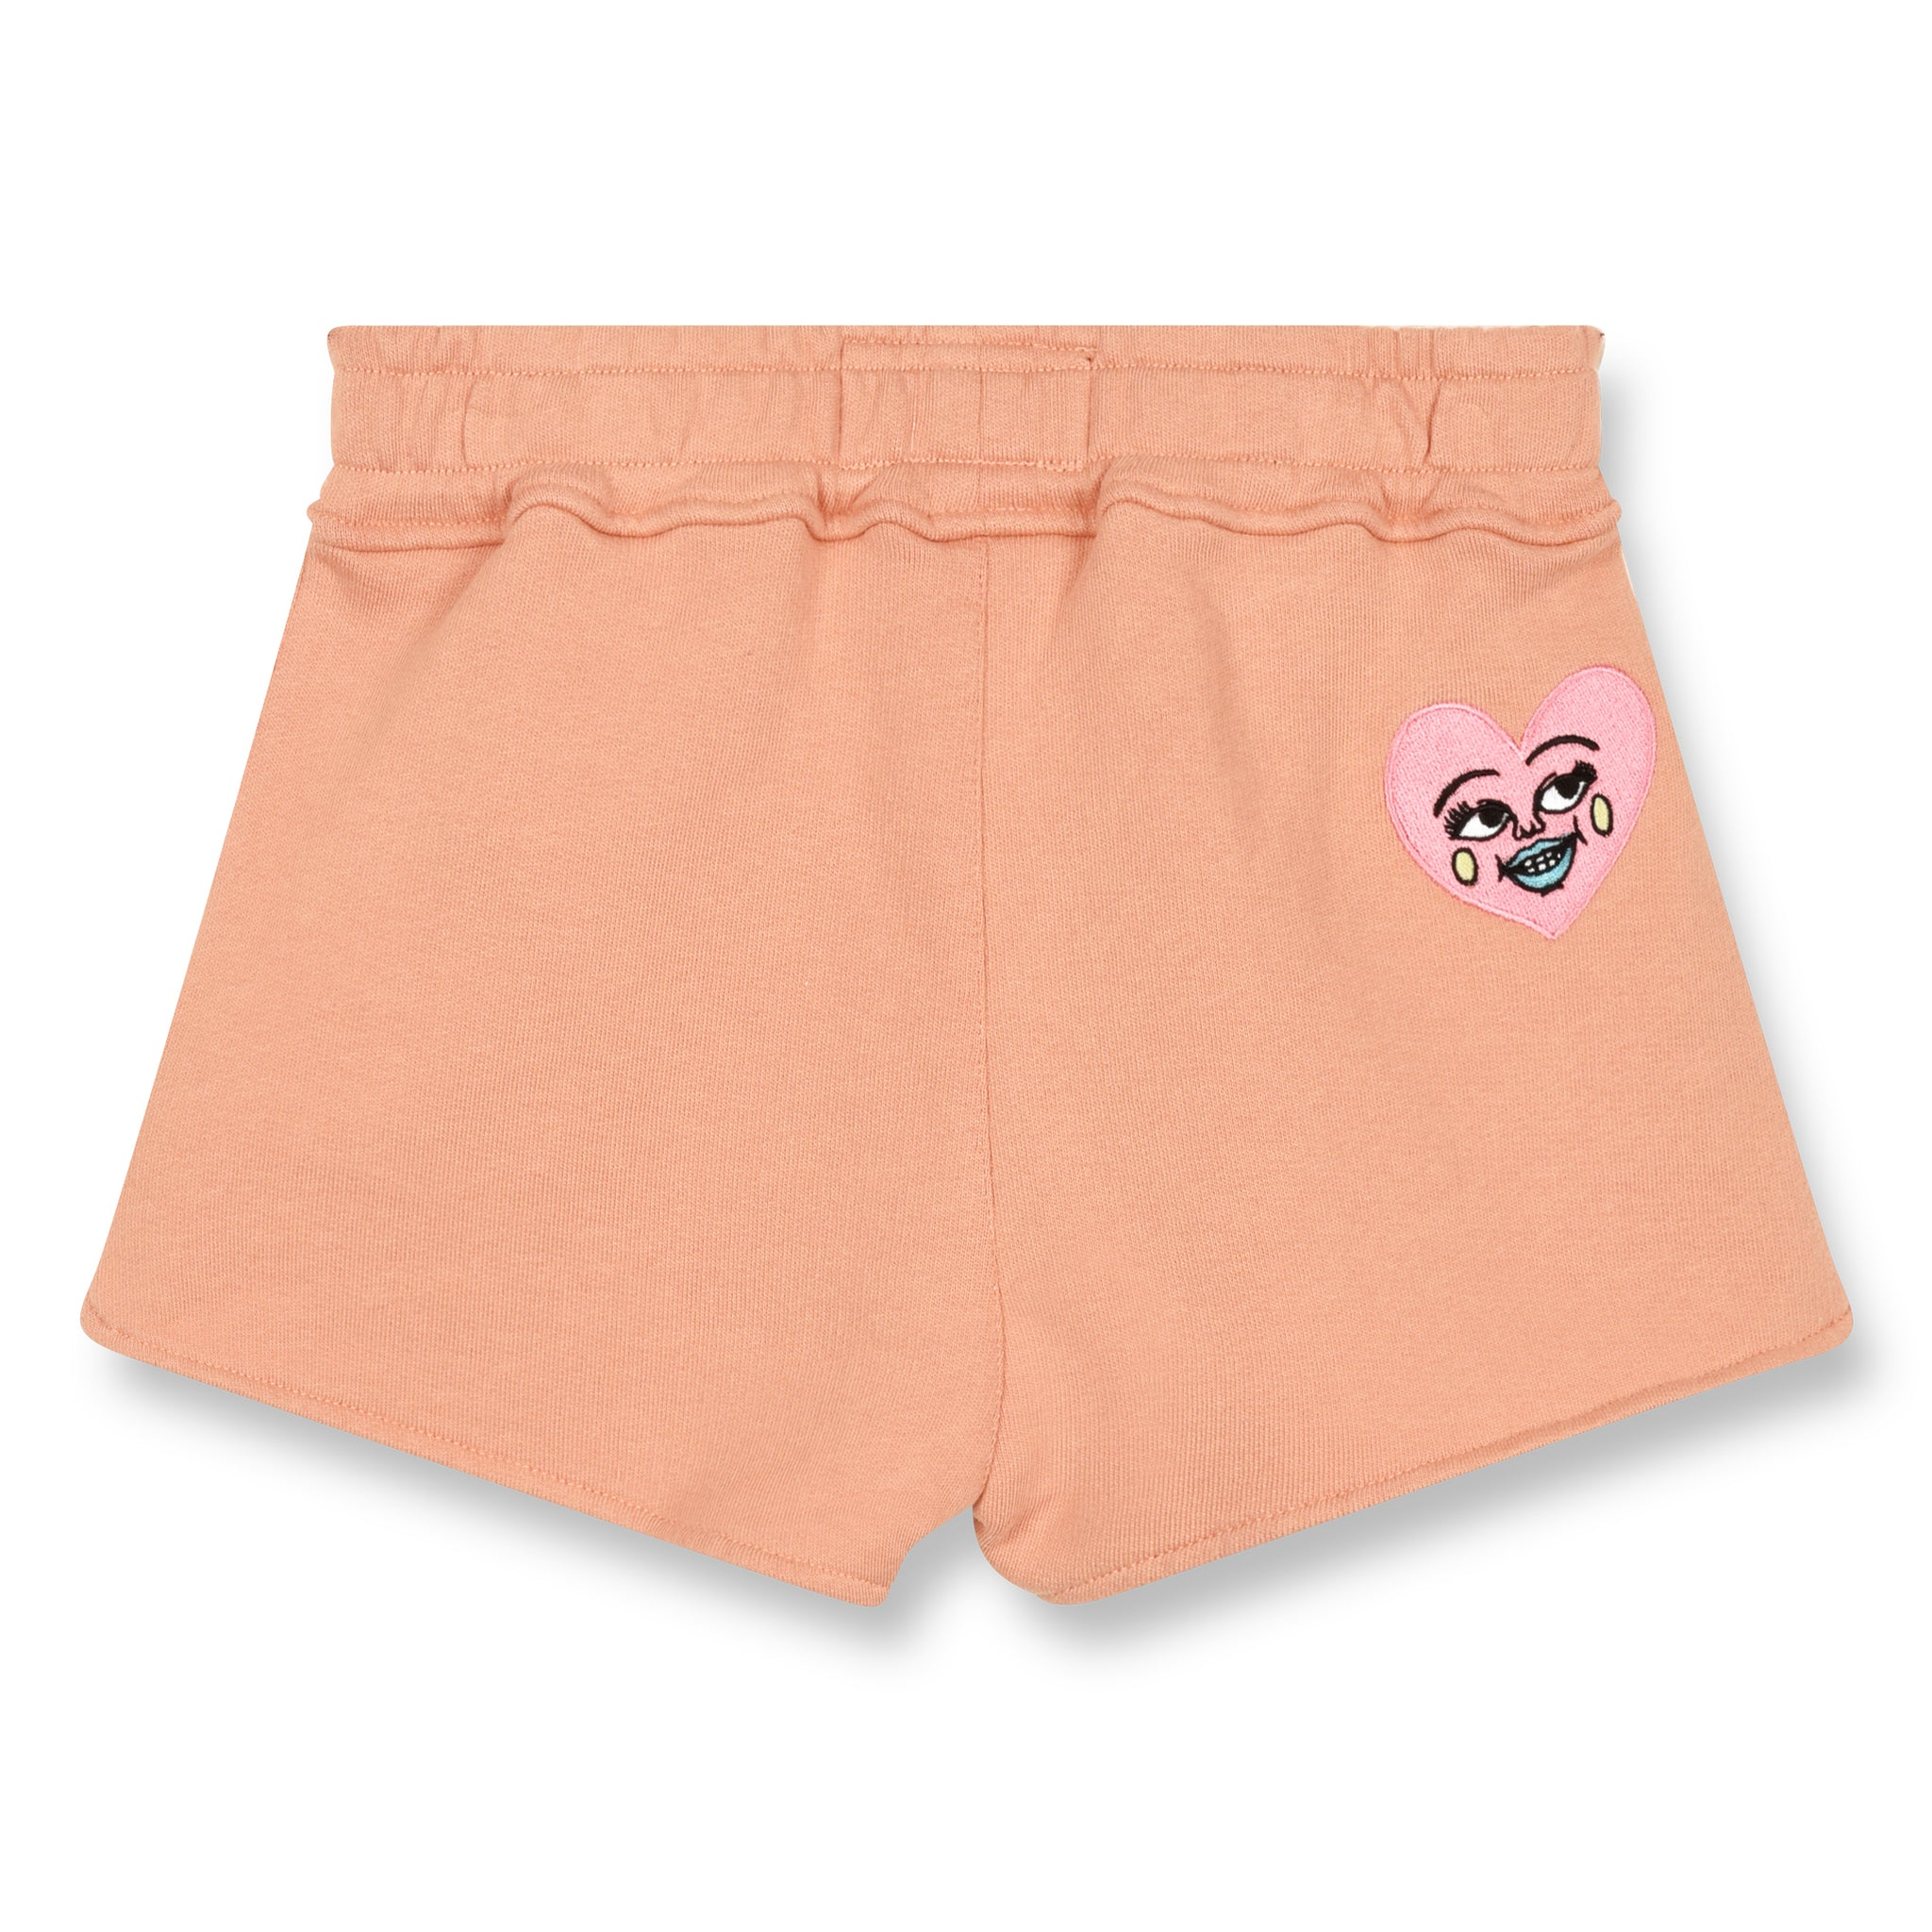 HOLIDAY Powder Pink Heart - Shorts 3